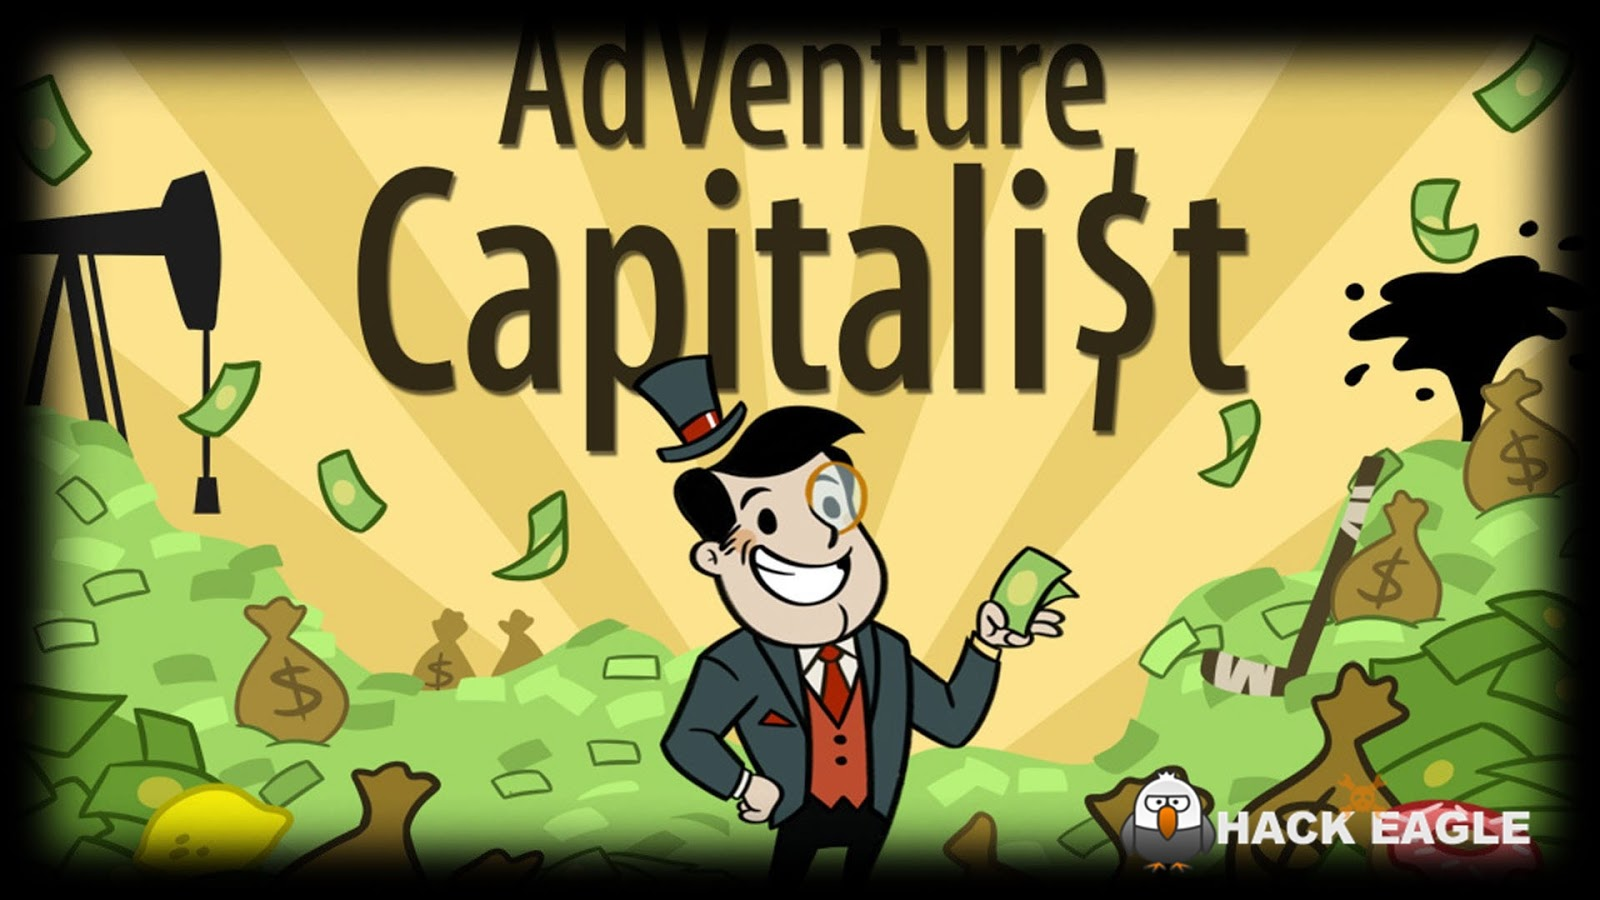 Free Hacks and Cheats Tools: AdVenture Capitalist Online Generator!